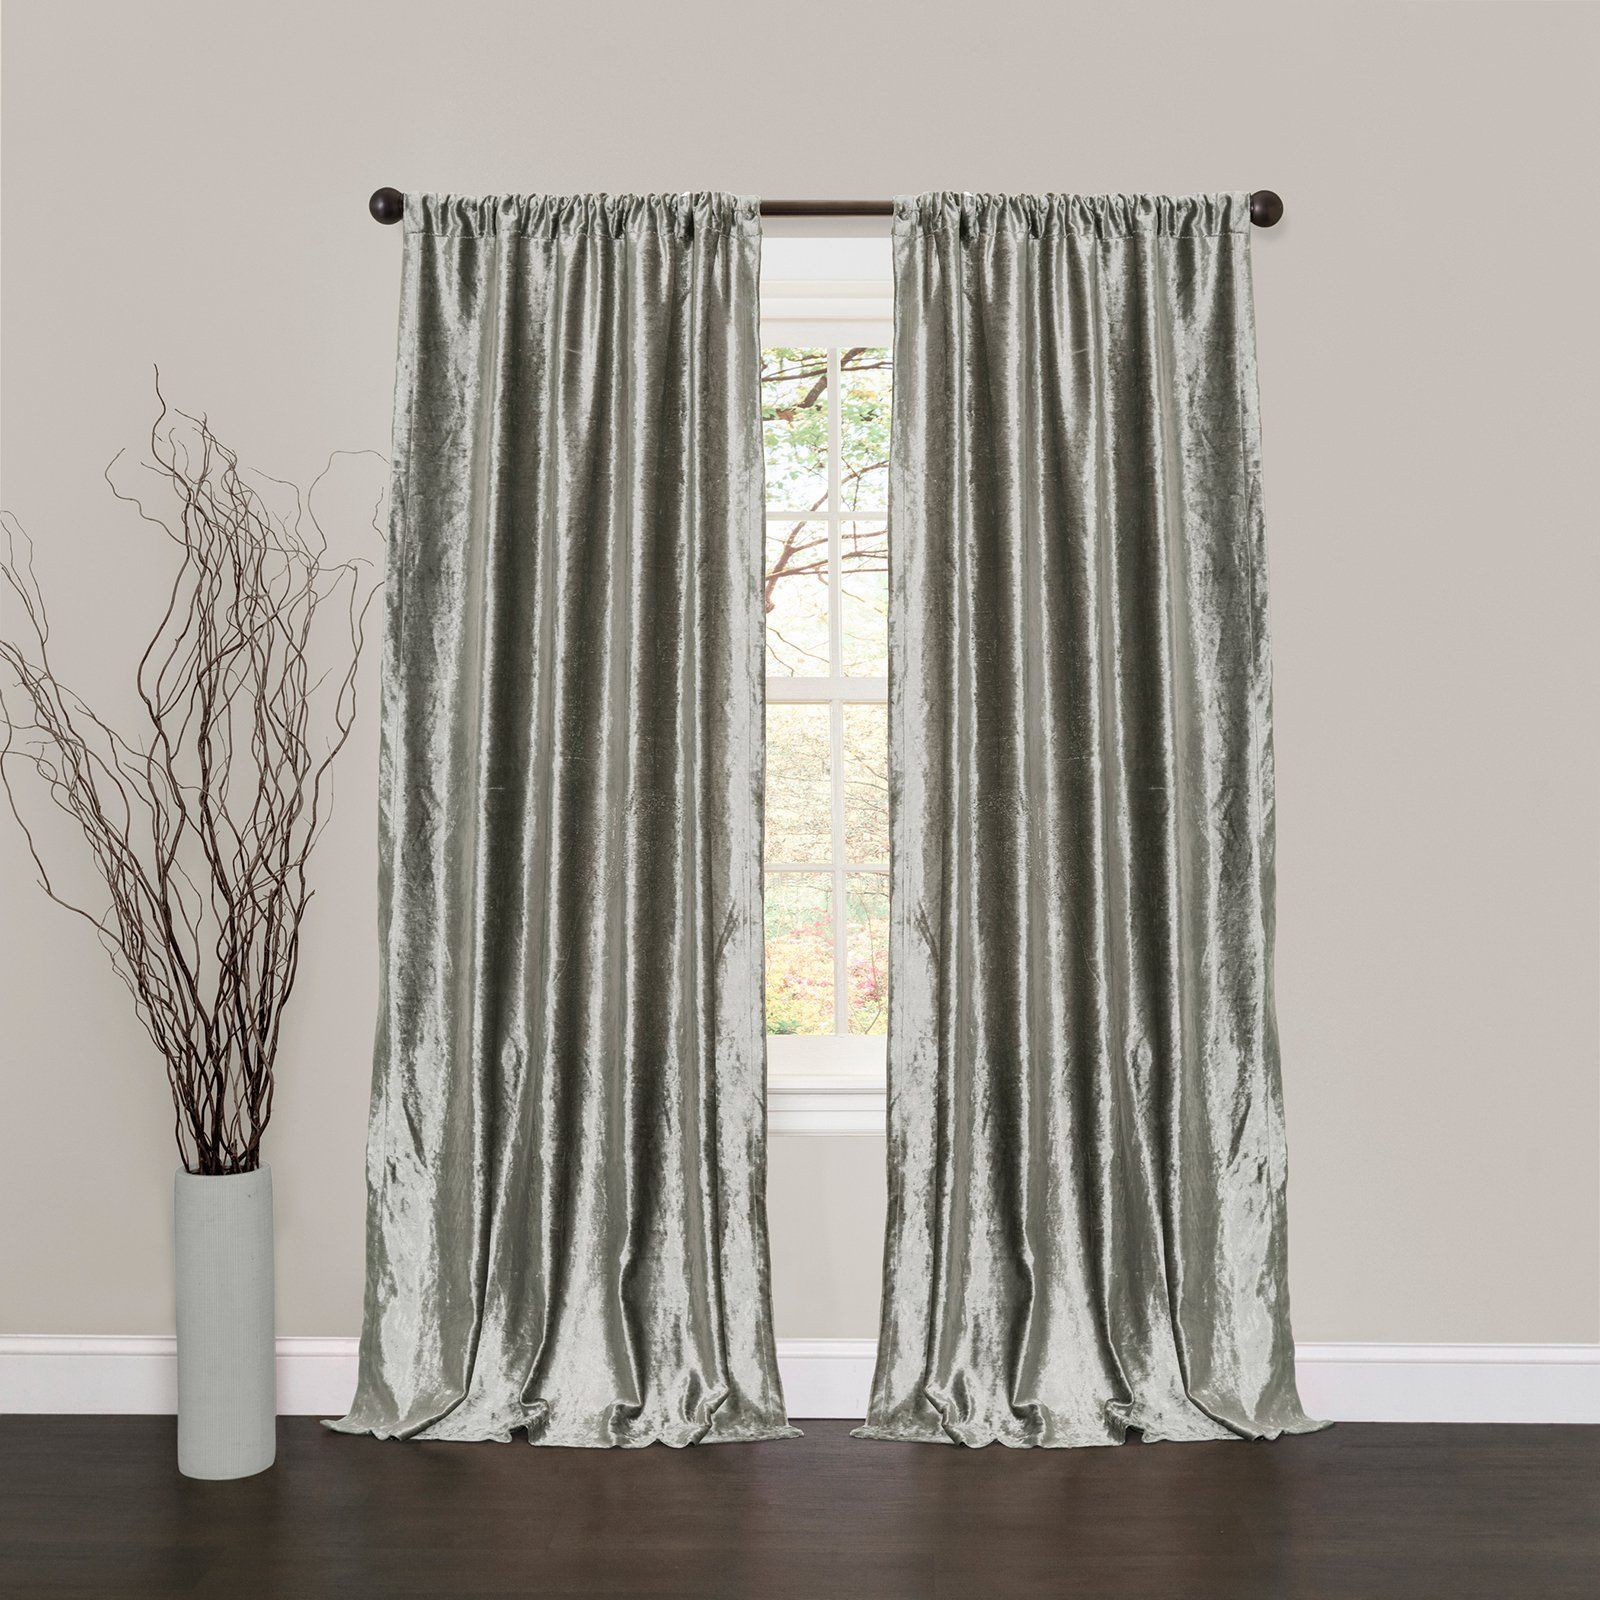 Lush Decor Velvet Dream Window Curtain Set - C11645Q13